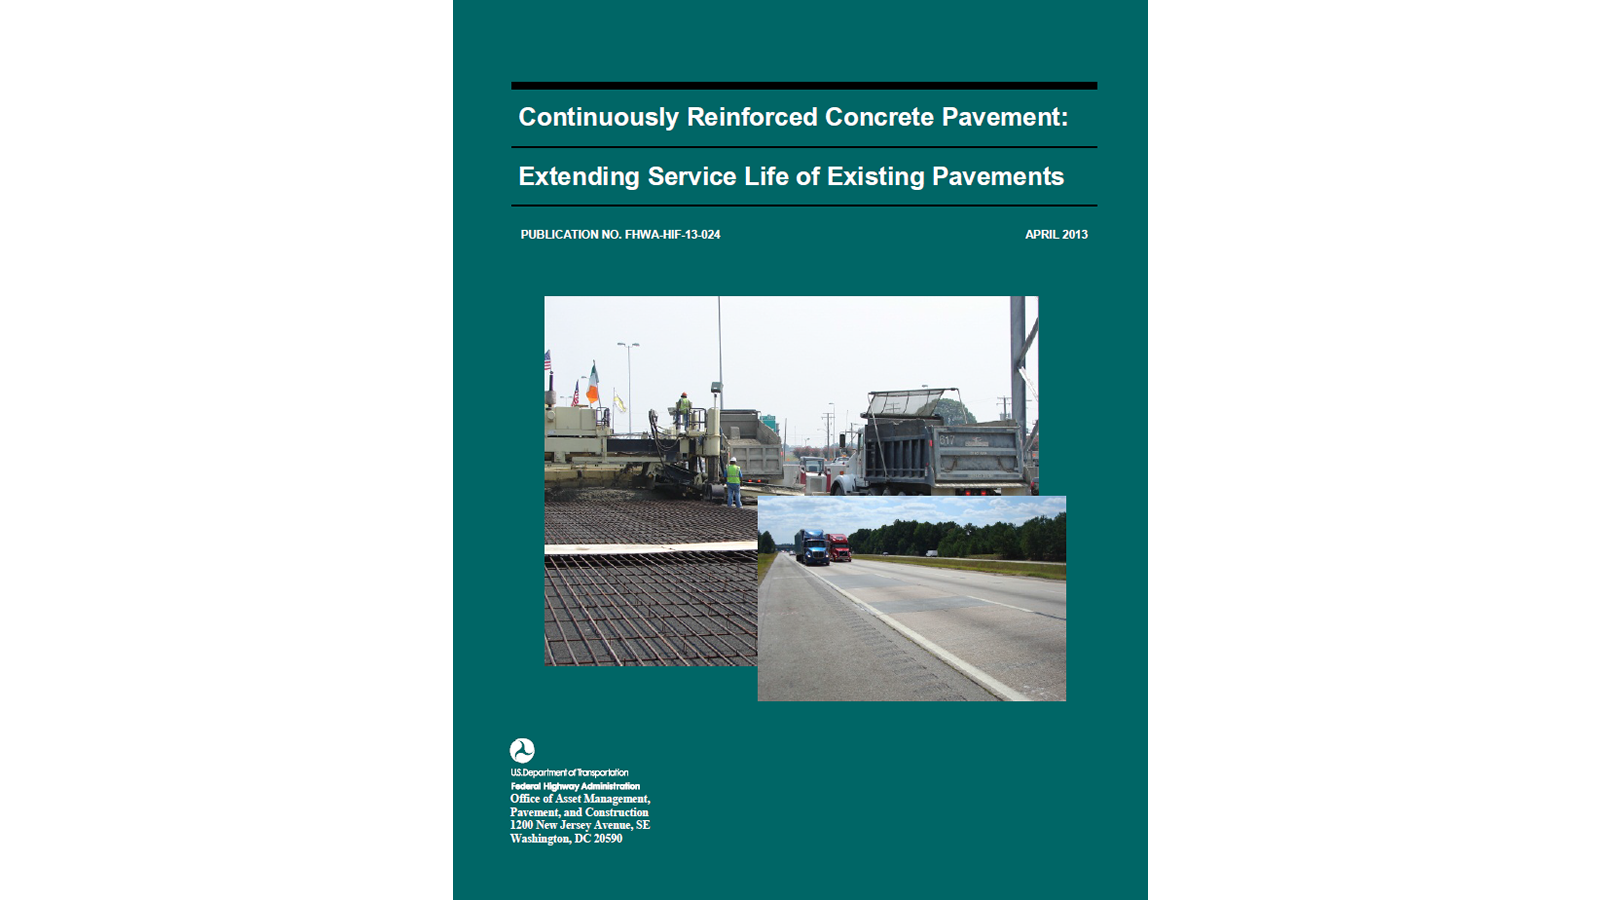 CRCP: Extending Service Life of Existing Pavements (FHWA-HIF-13-024)